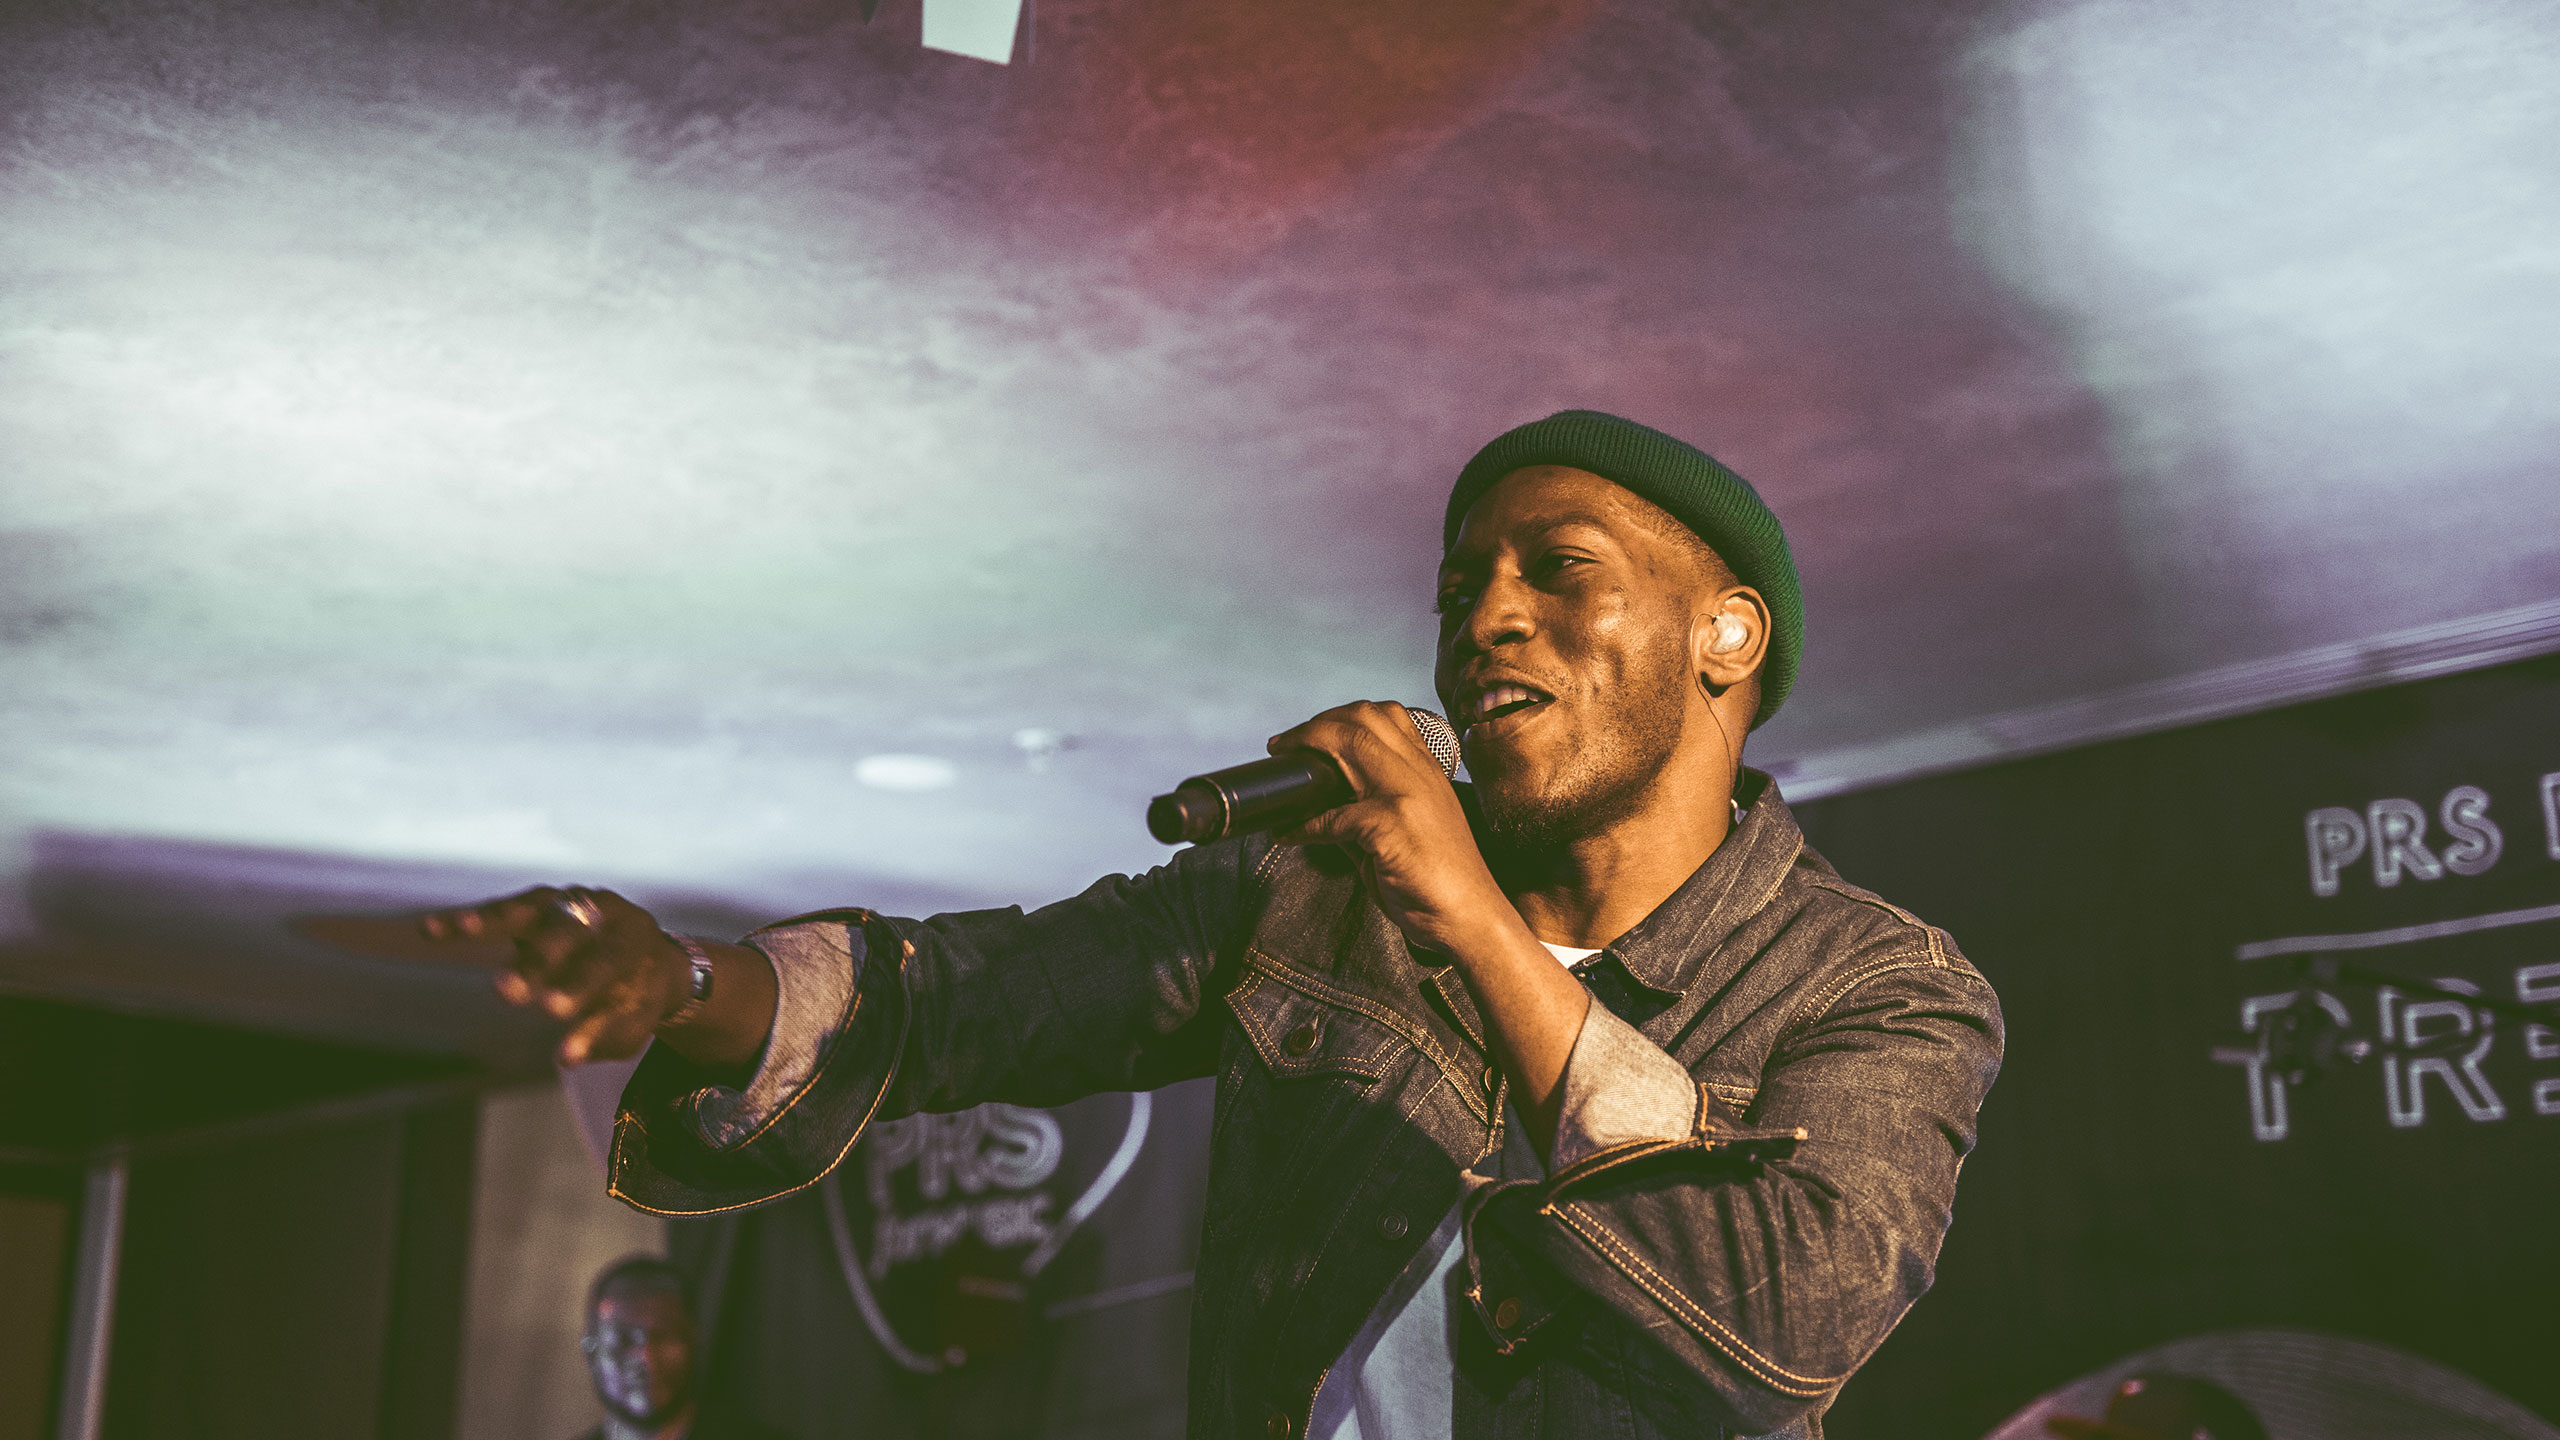 Tiggs Da Author points into the crowd as he performs at PRS Presents, wearing a green hat and denim jacket